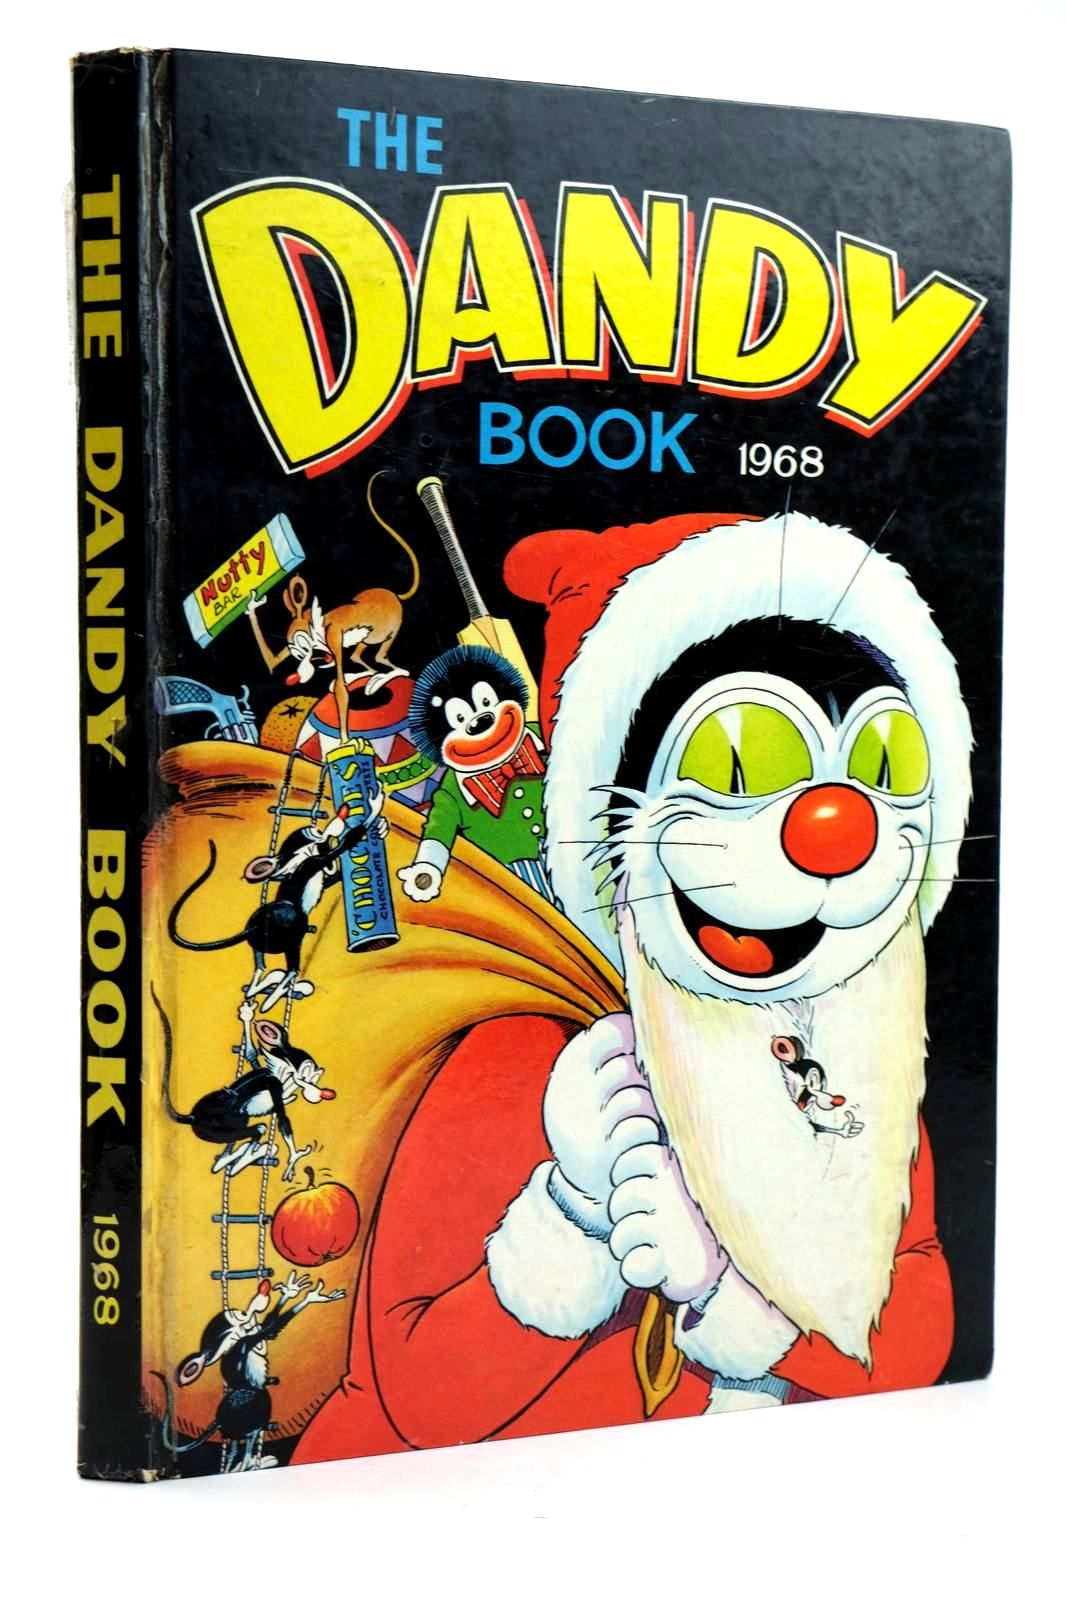 Photo of THE DANDY BOOK 1968 published by D.C. Thomson & Co Ltd. (STOCK CODE: 2131954)  for sale by Stella & Rose's Books